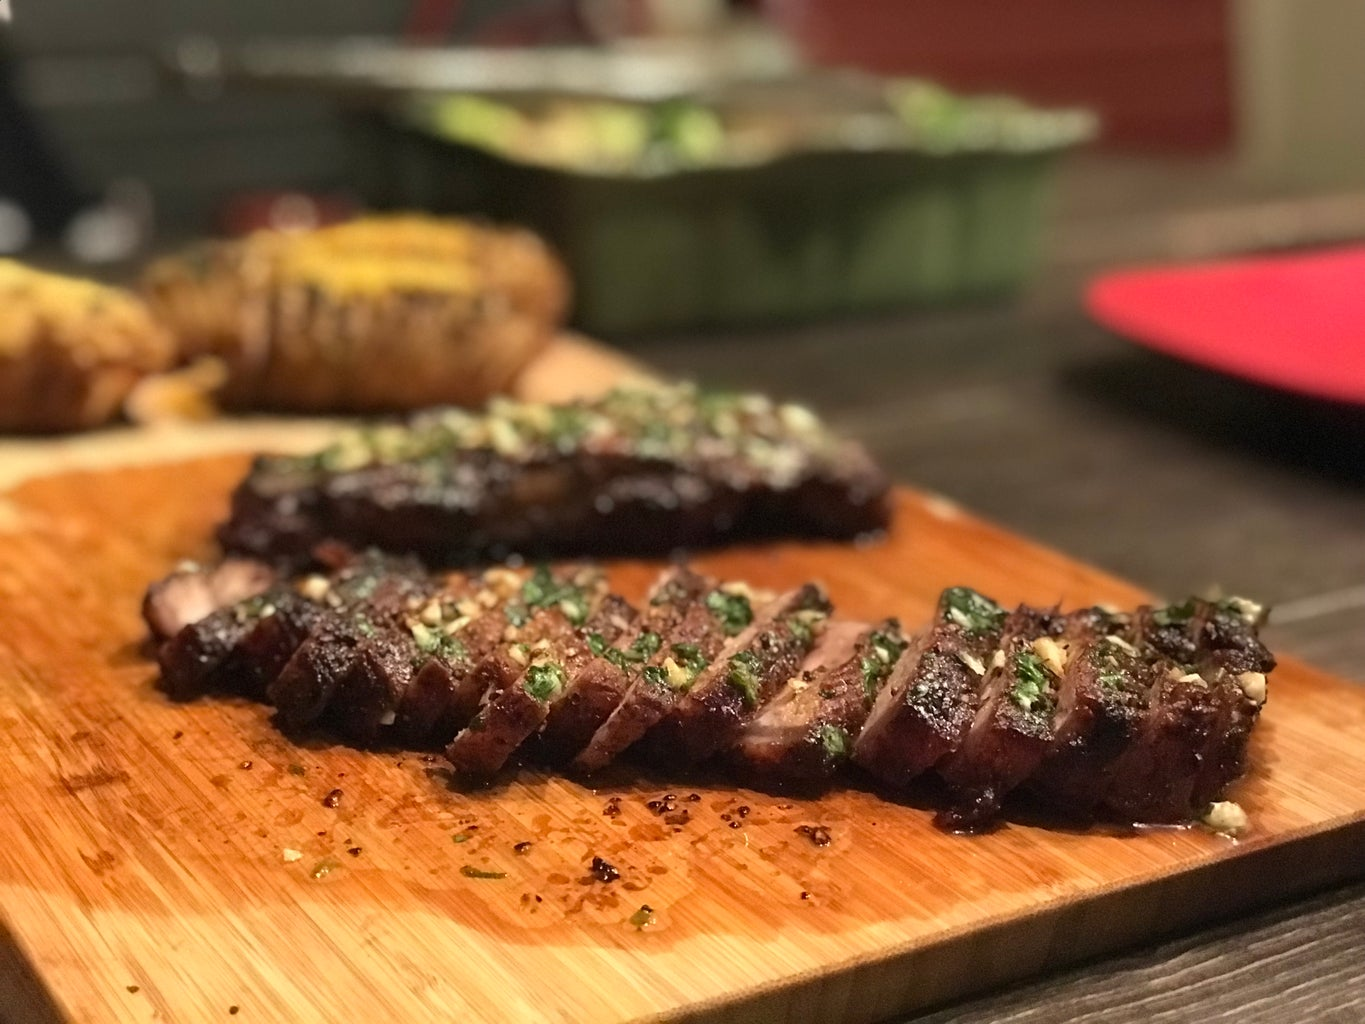 How to Make a NY Strip Steak on the Stove